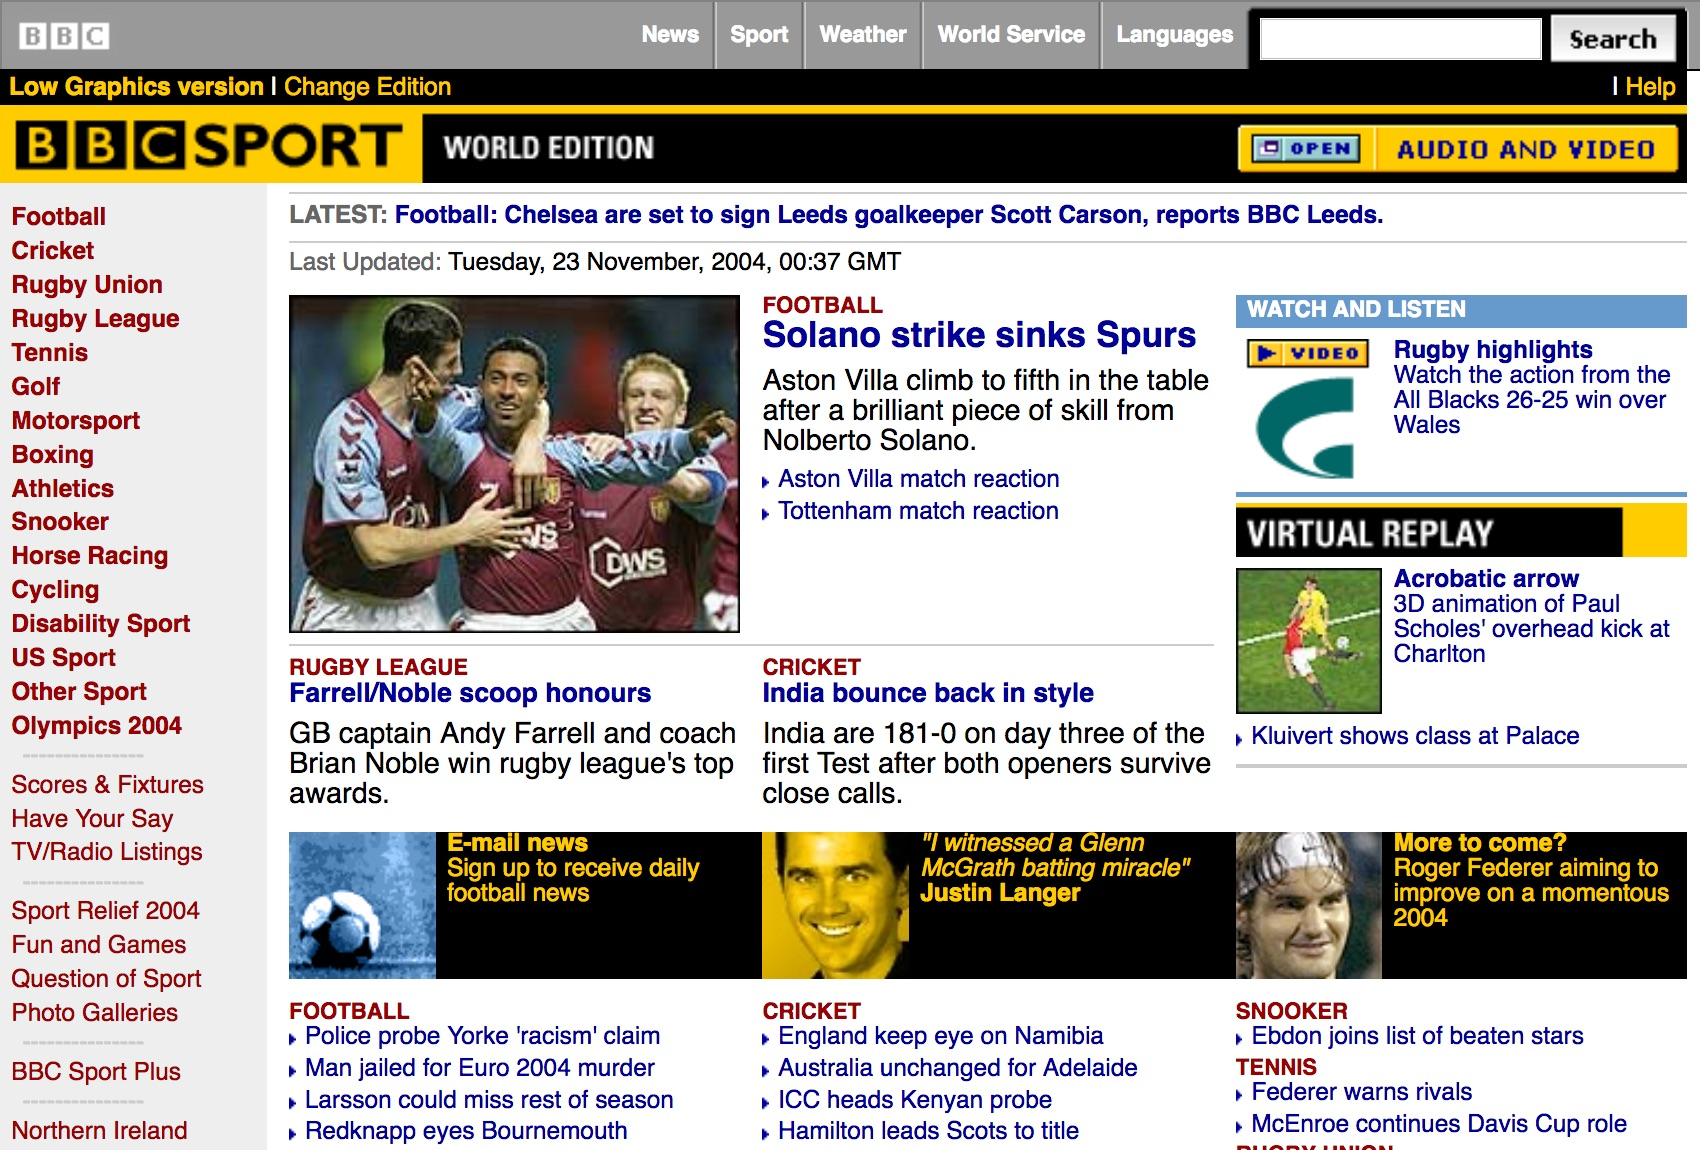 BBC.co.uk homepage (2004)